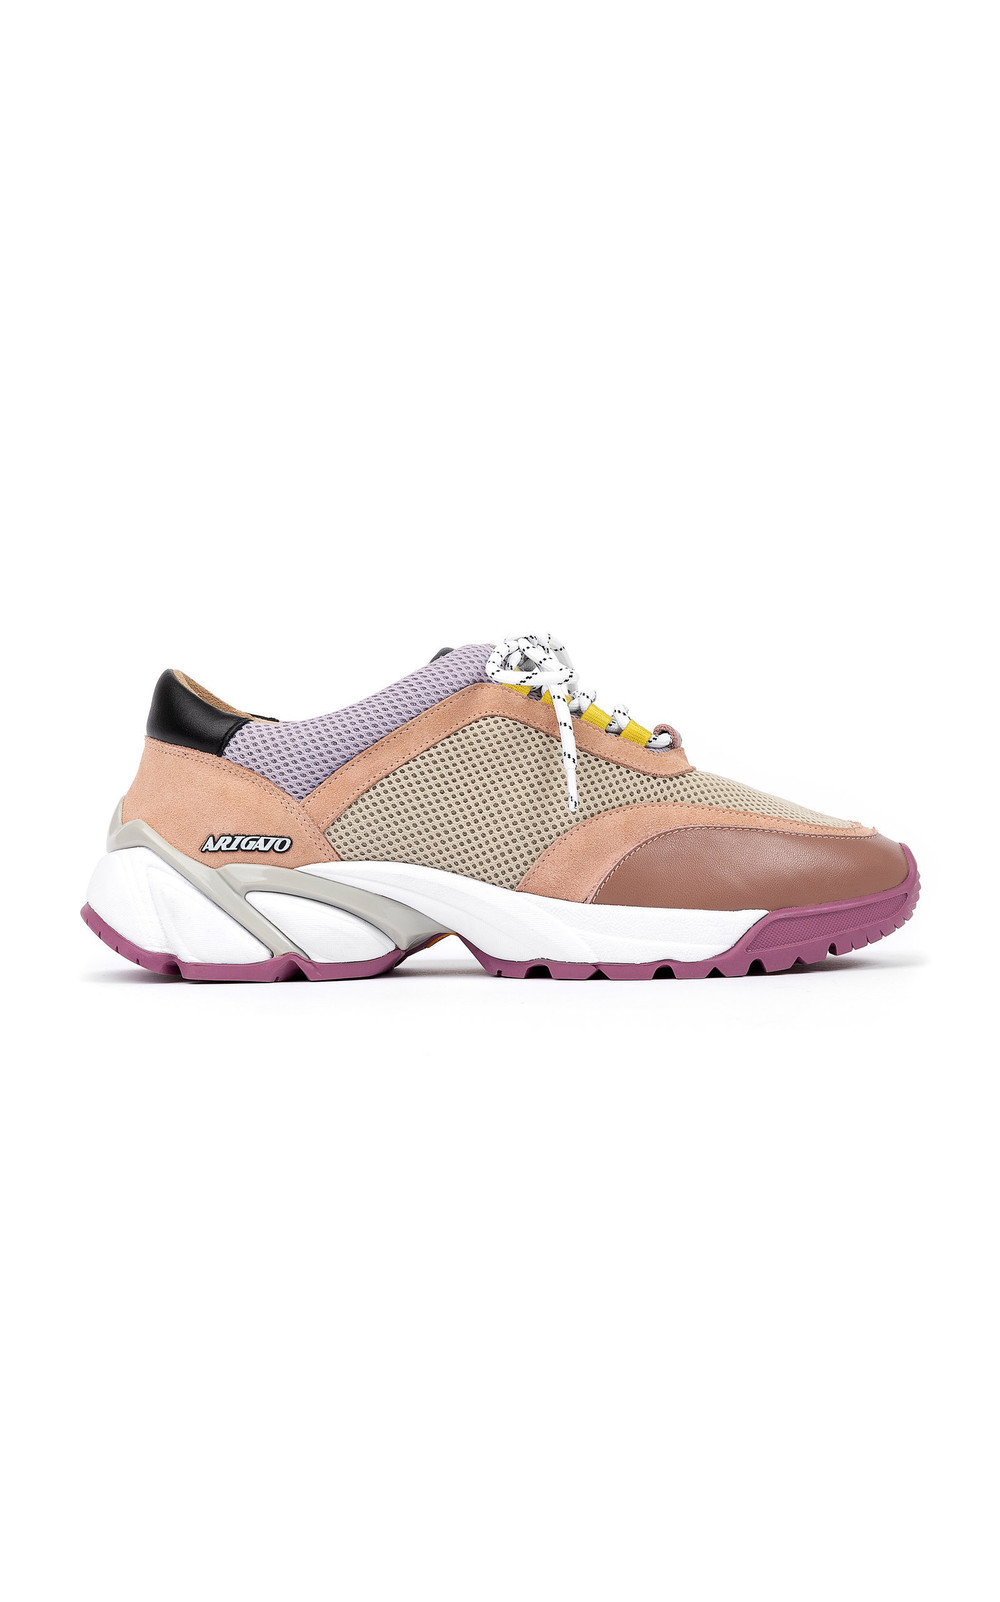 Axel Arigato System Leather Running Shoes in multi